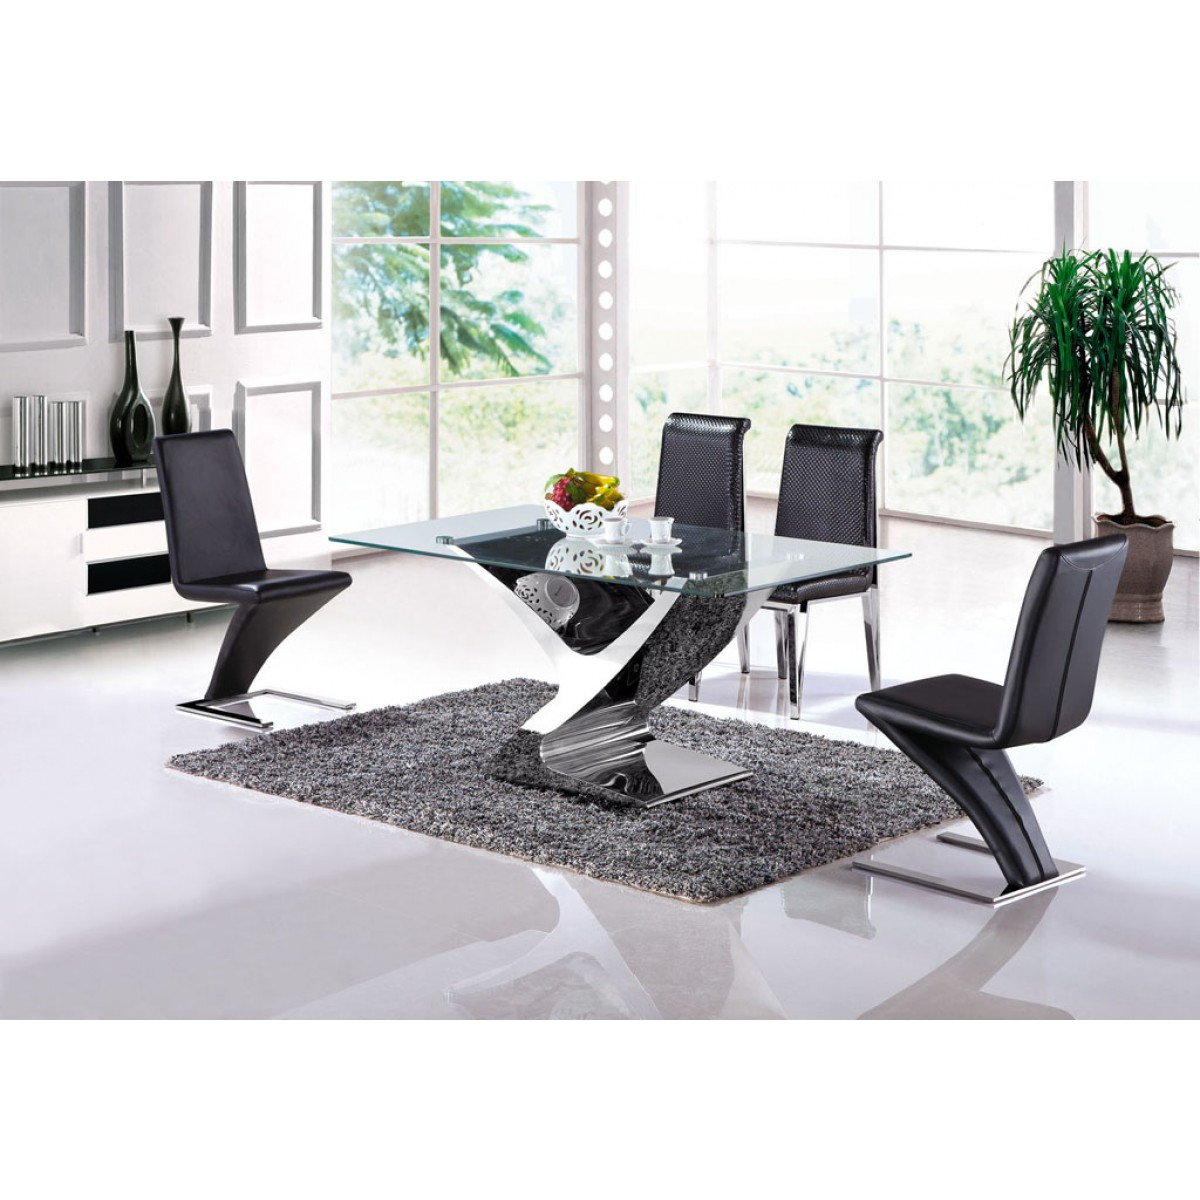 Table de salle manger en inox selena pop for Table sejour design